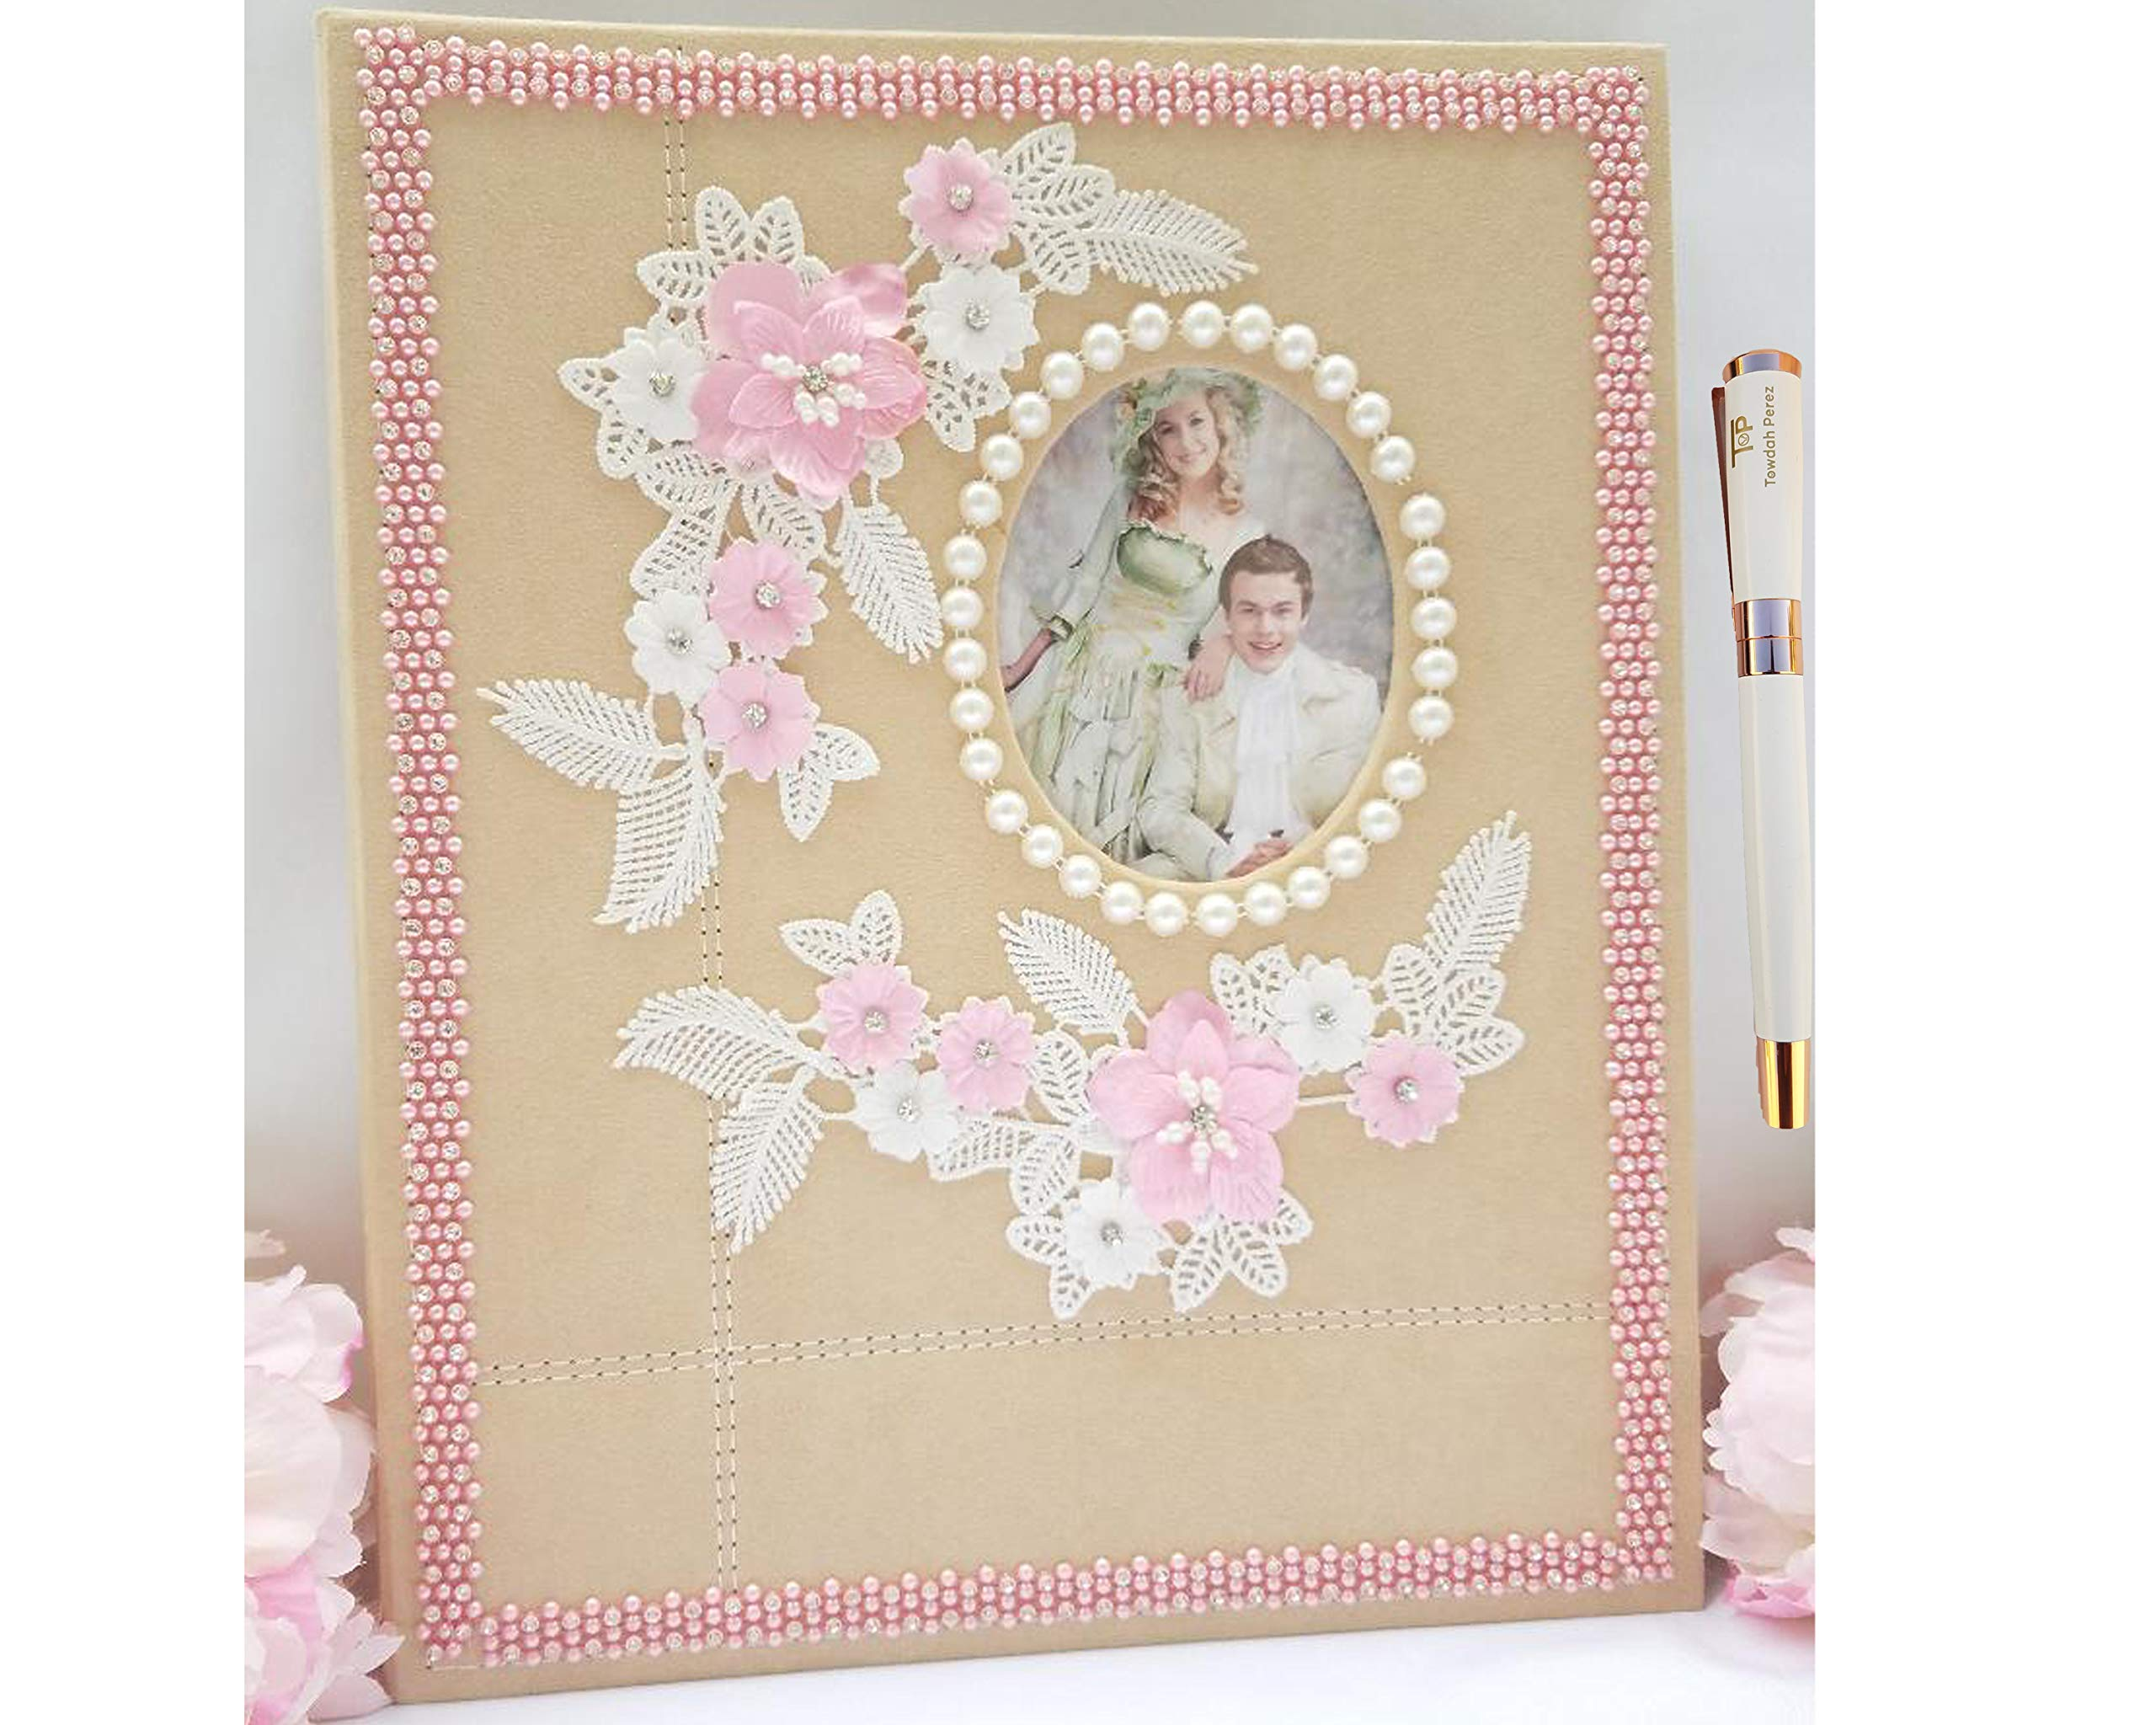 Towdah Perez large self adhesive wedding photo album. 40 pages for 4x6, 5x7, 8x10, 8x12 photos with gift box, luxury white/gold pen. Fabric pearls/bling pink lace flowers wedding album, personalizable by Towdah Perez